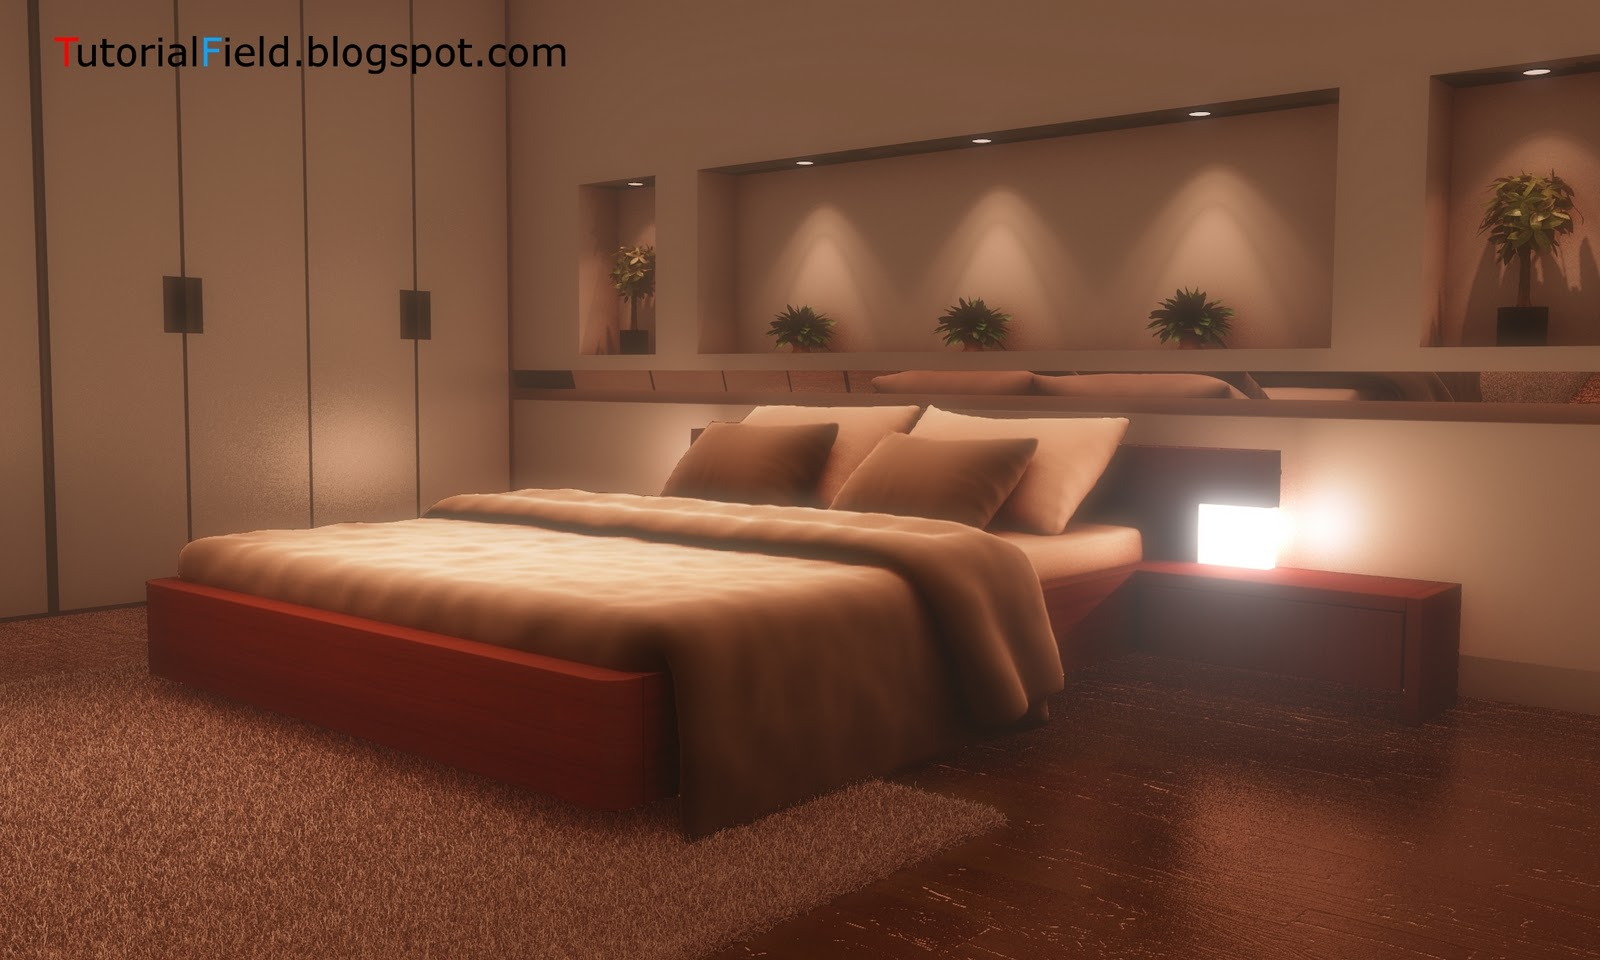 TutorialField blogspot com: Blender 2 6 - Internal render - Interior